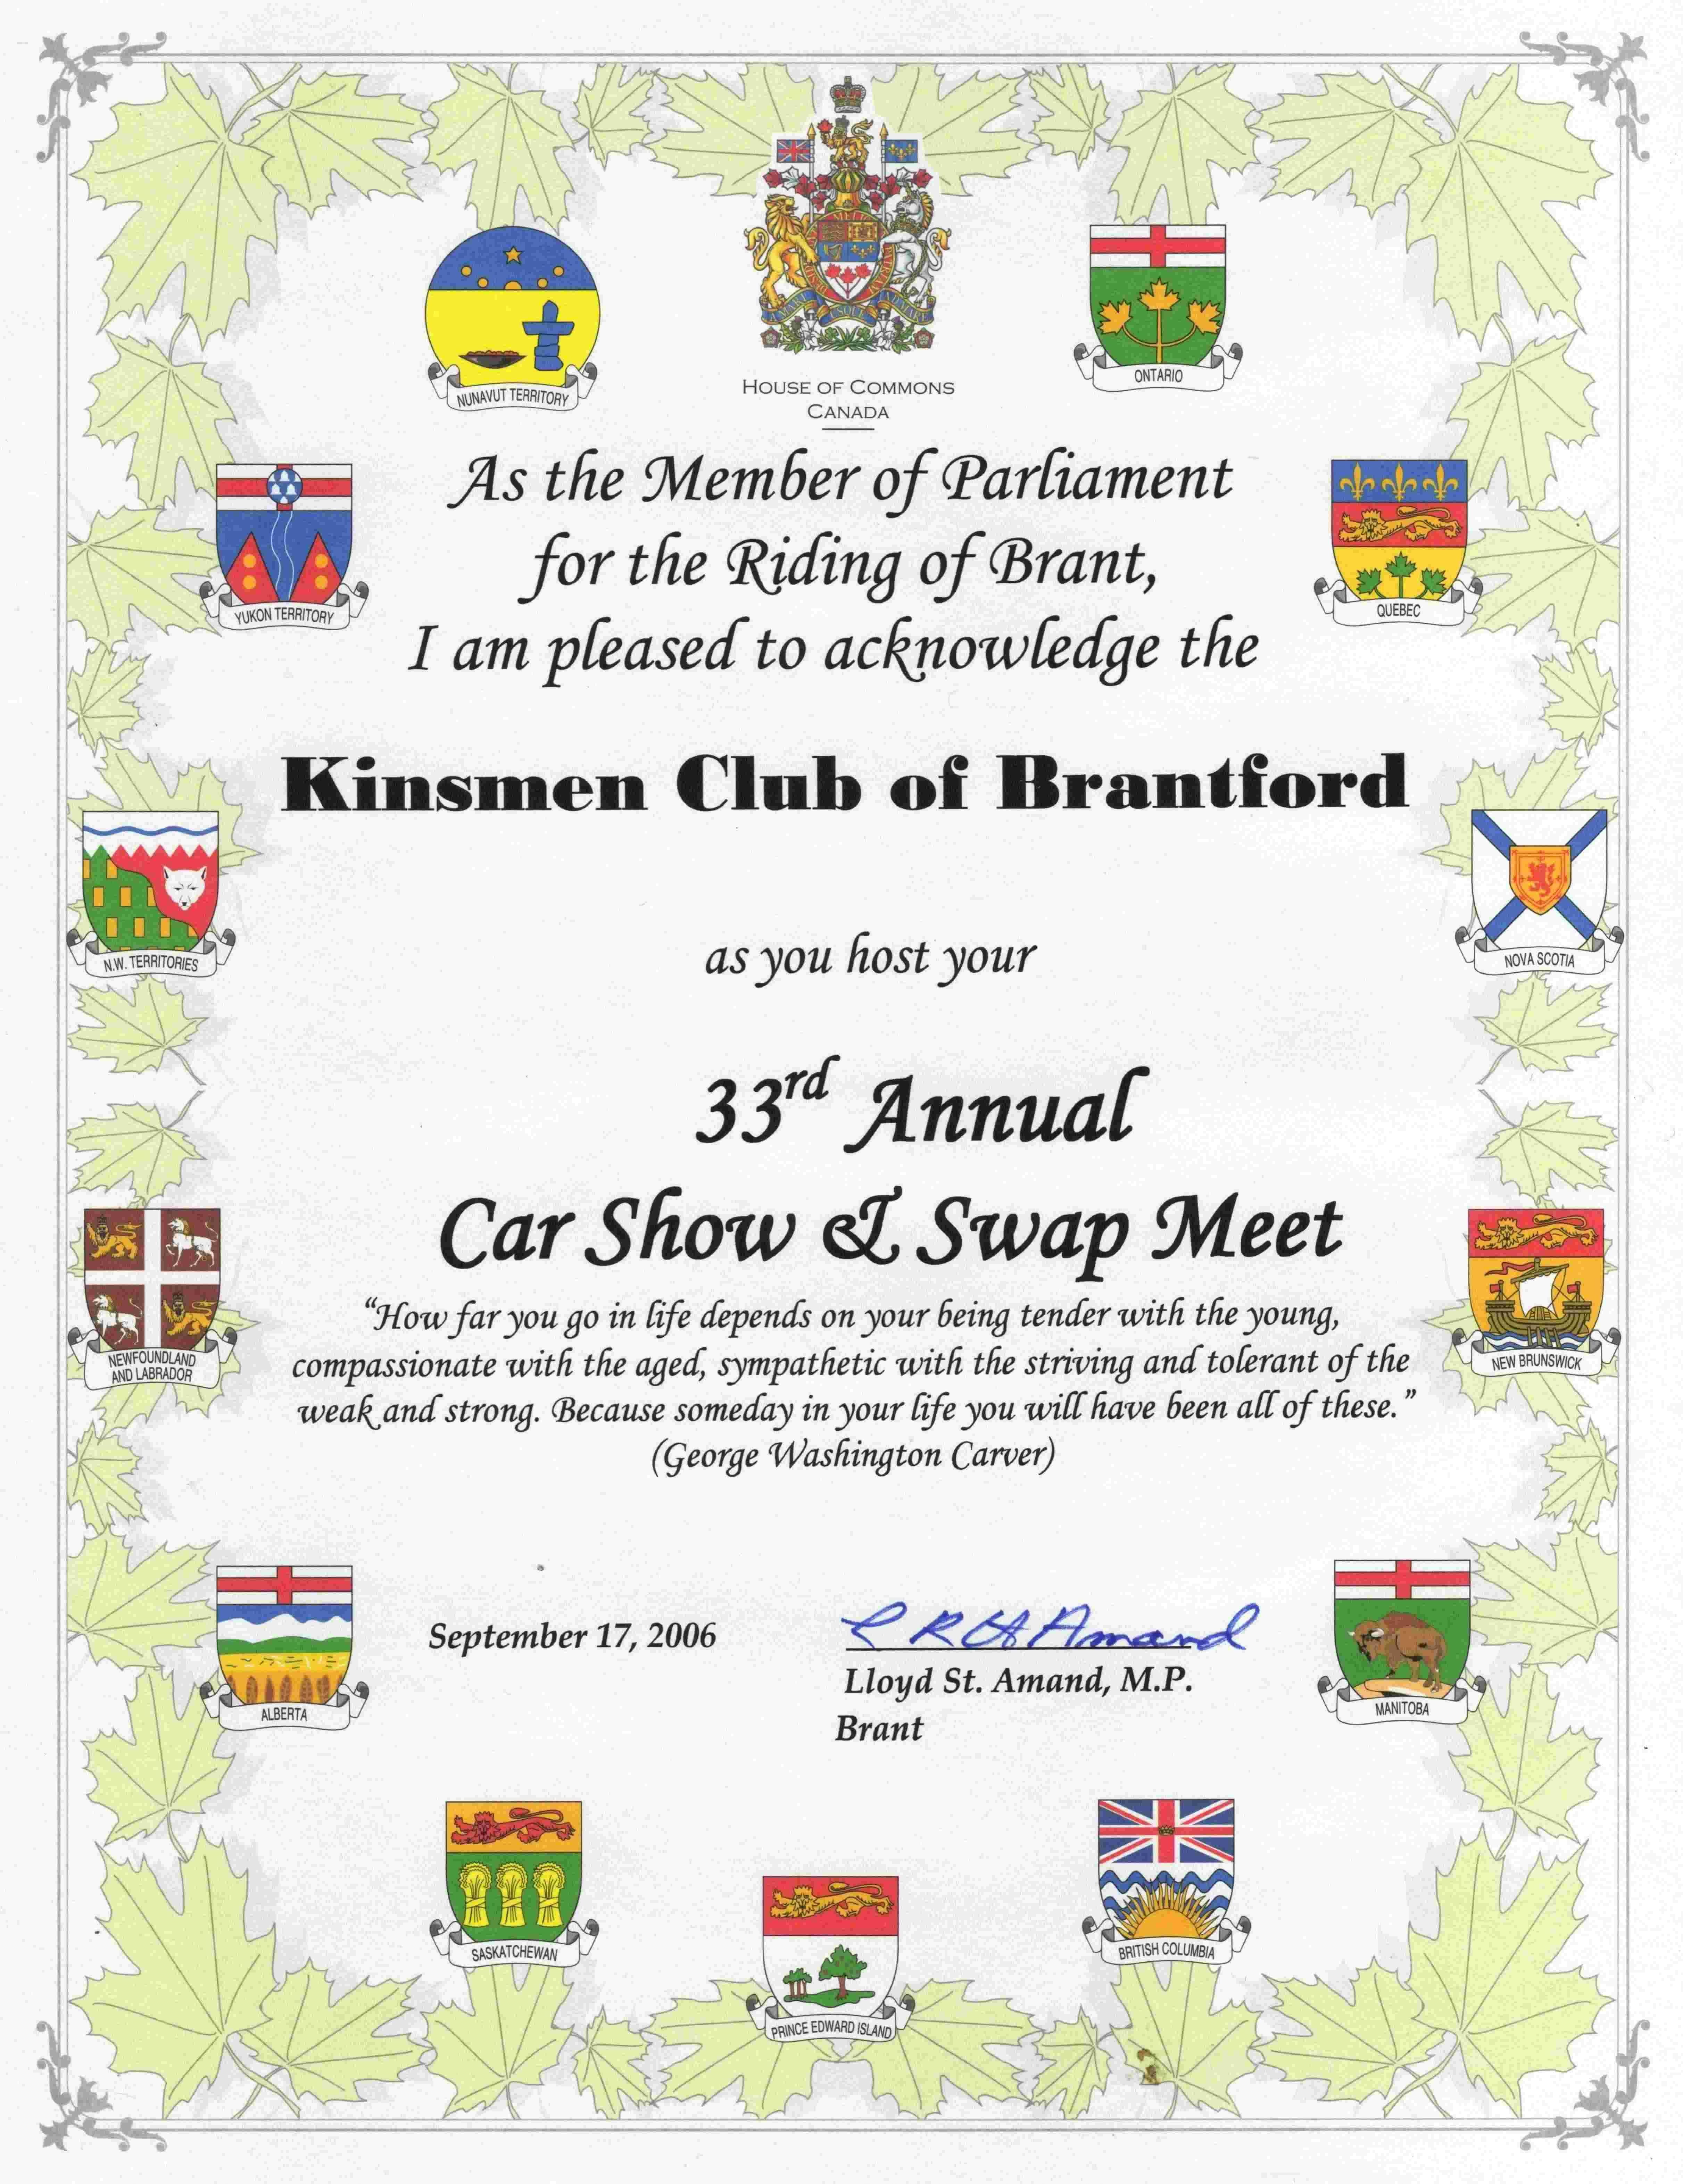 Certificate from Lloyd St. Amand for 33rd Car Show